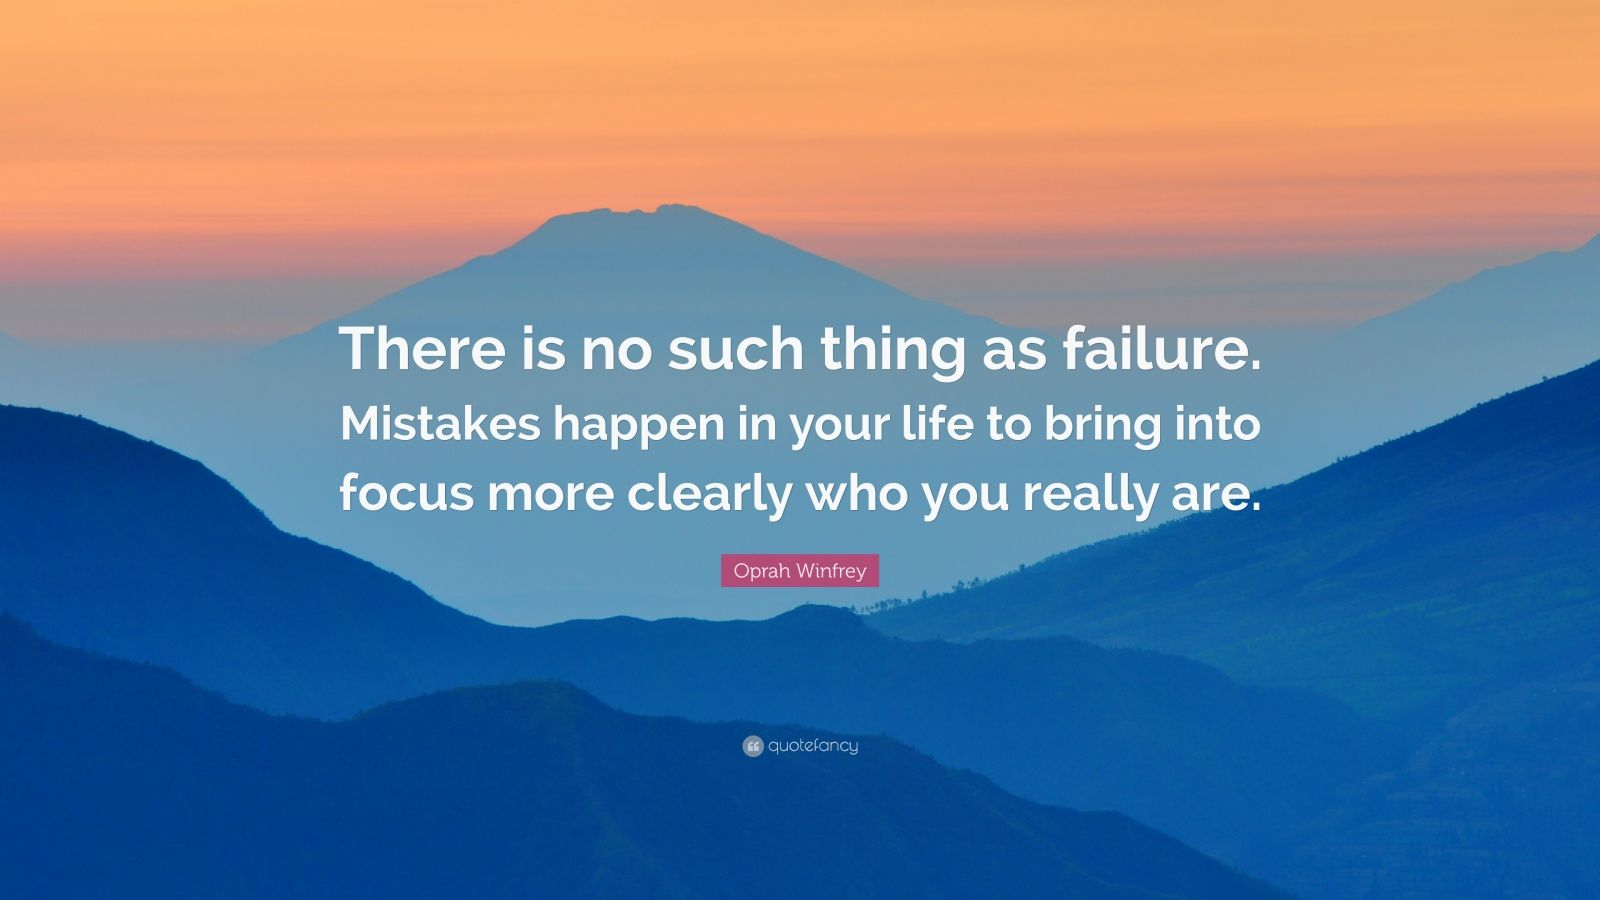 """Oprah Winfrey Quote: """"There is no such thing as failure. Mistakes happen in your life to bring into focus more clearly who you really are."""""""